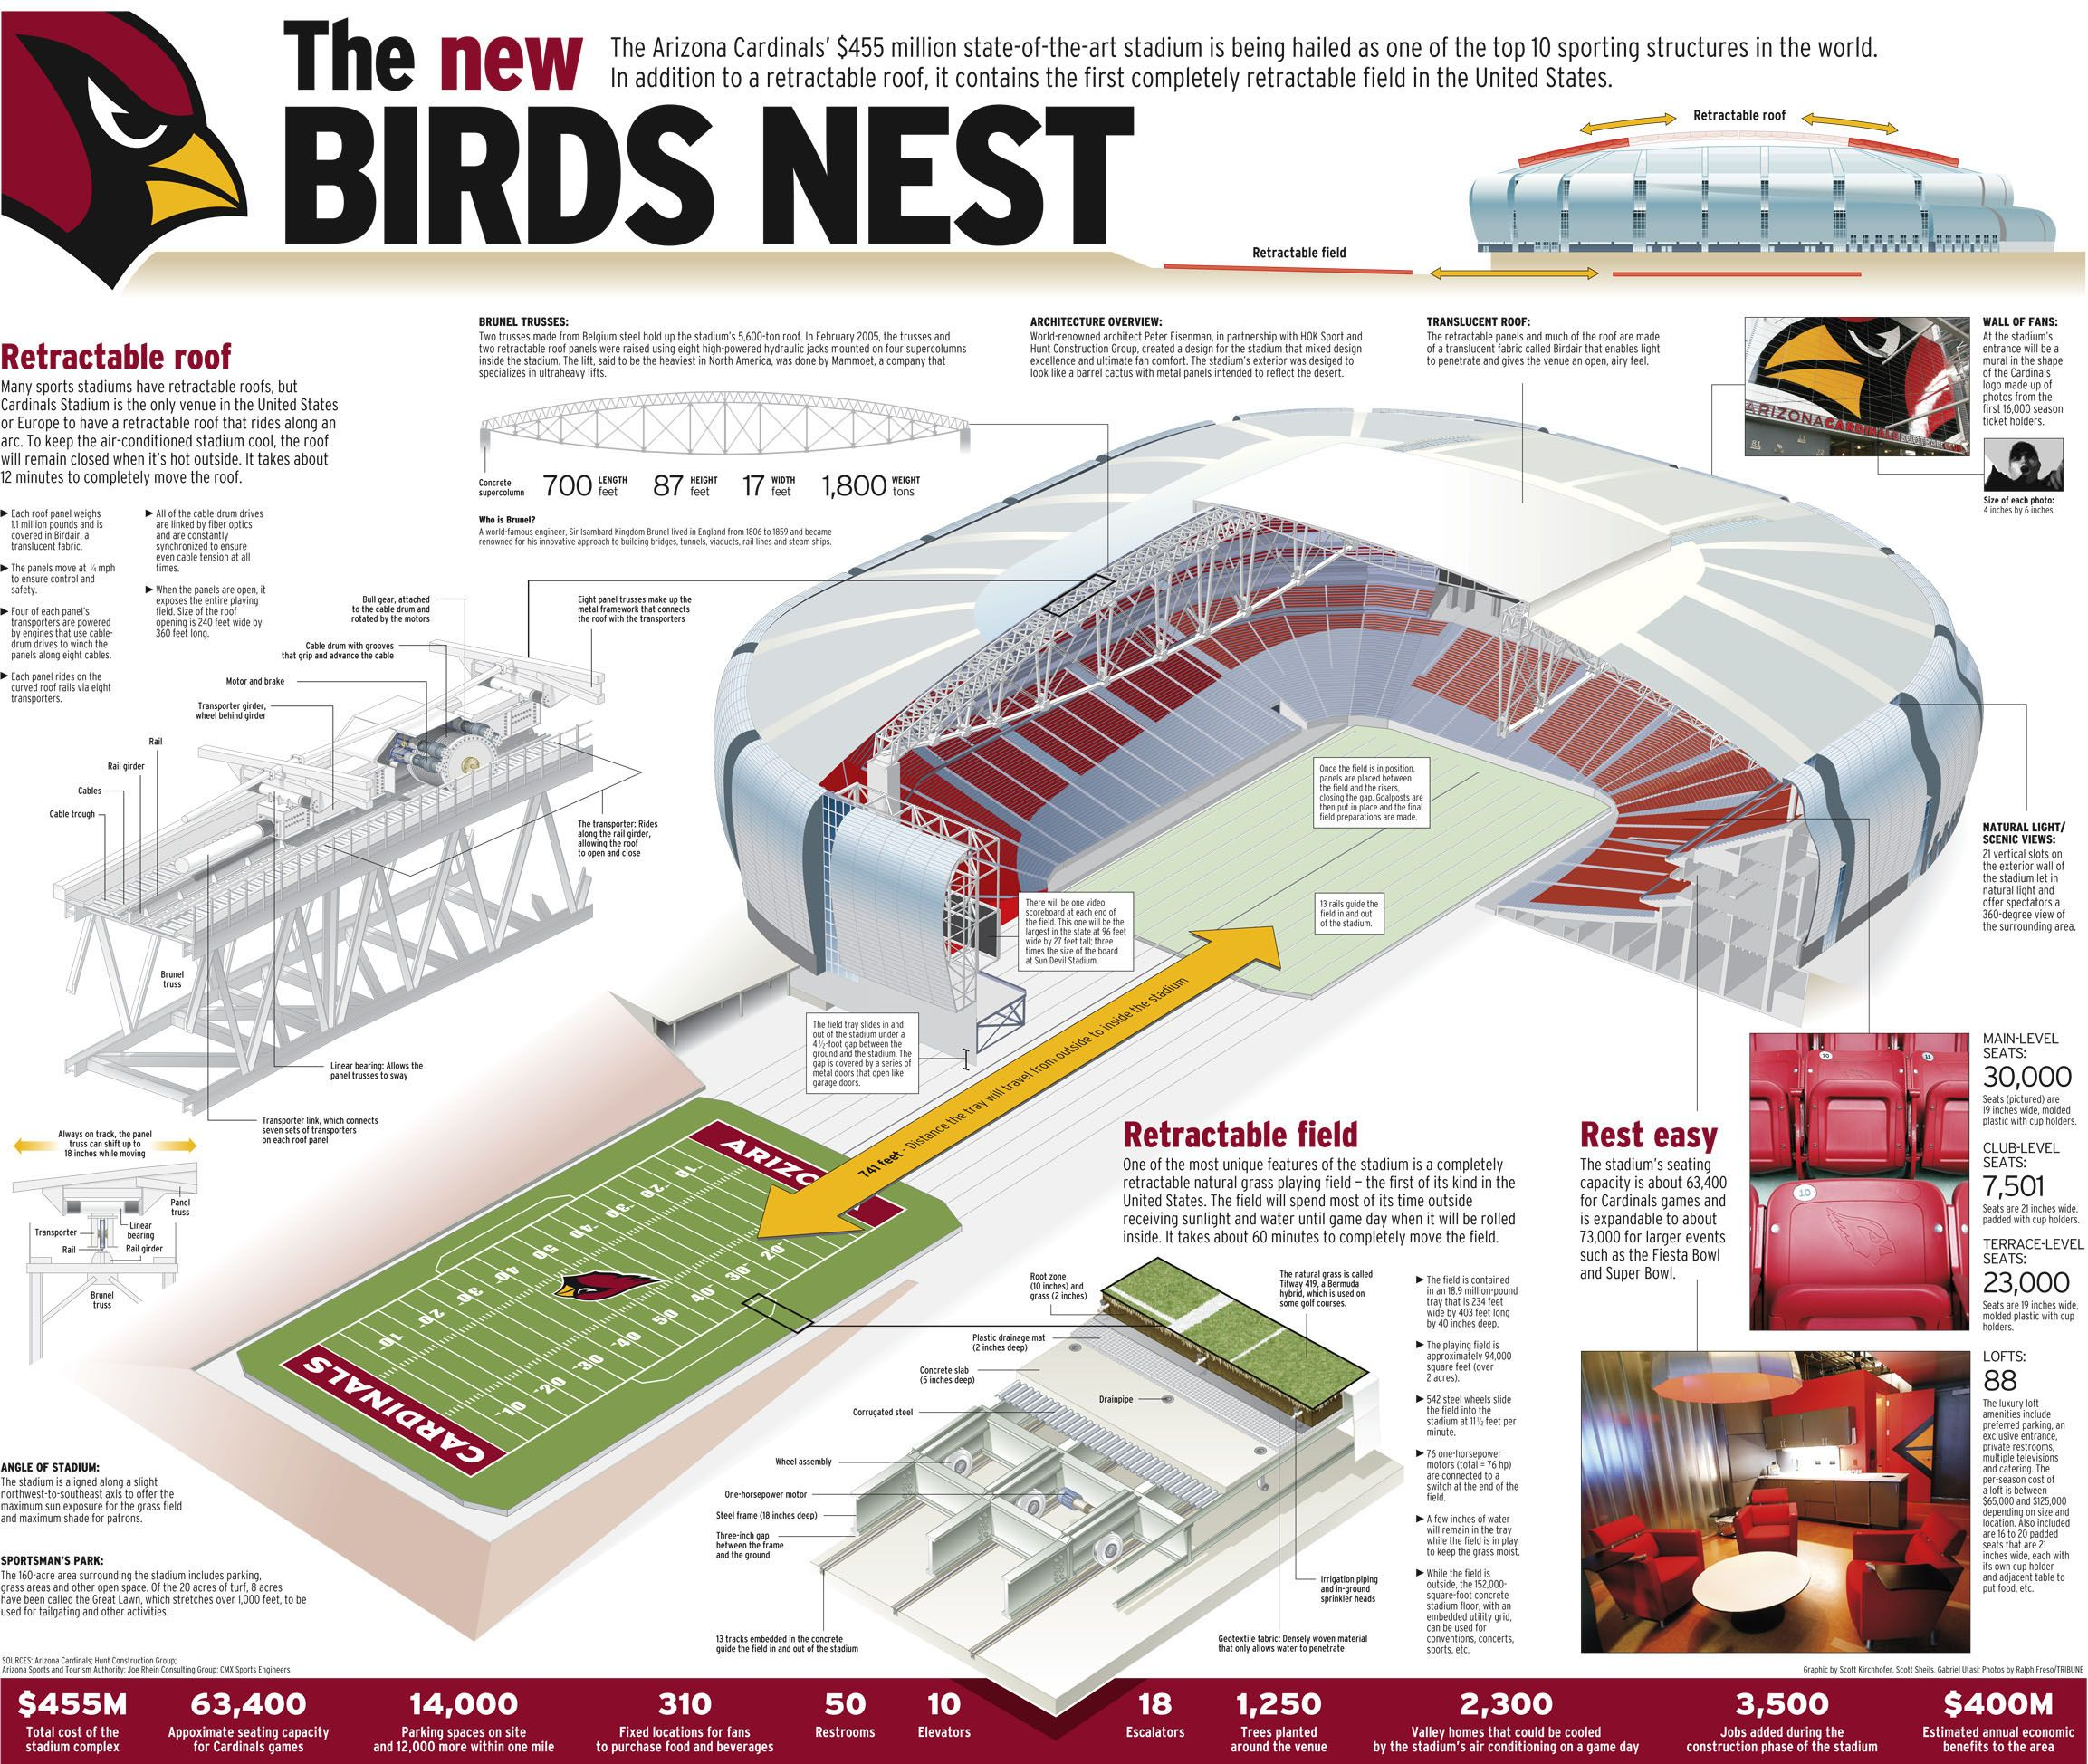 Arizona Cardinals Stadium Map University of Phoenix Stadium | Cardinals | Arizona cardinals